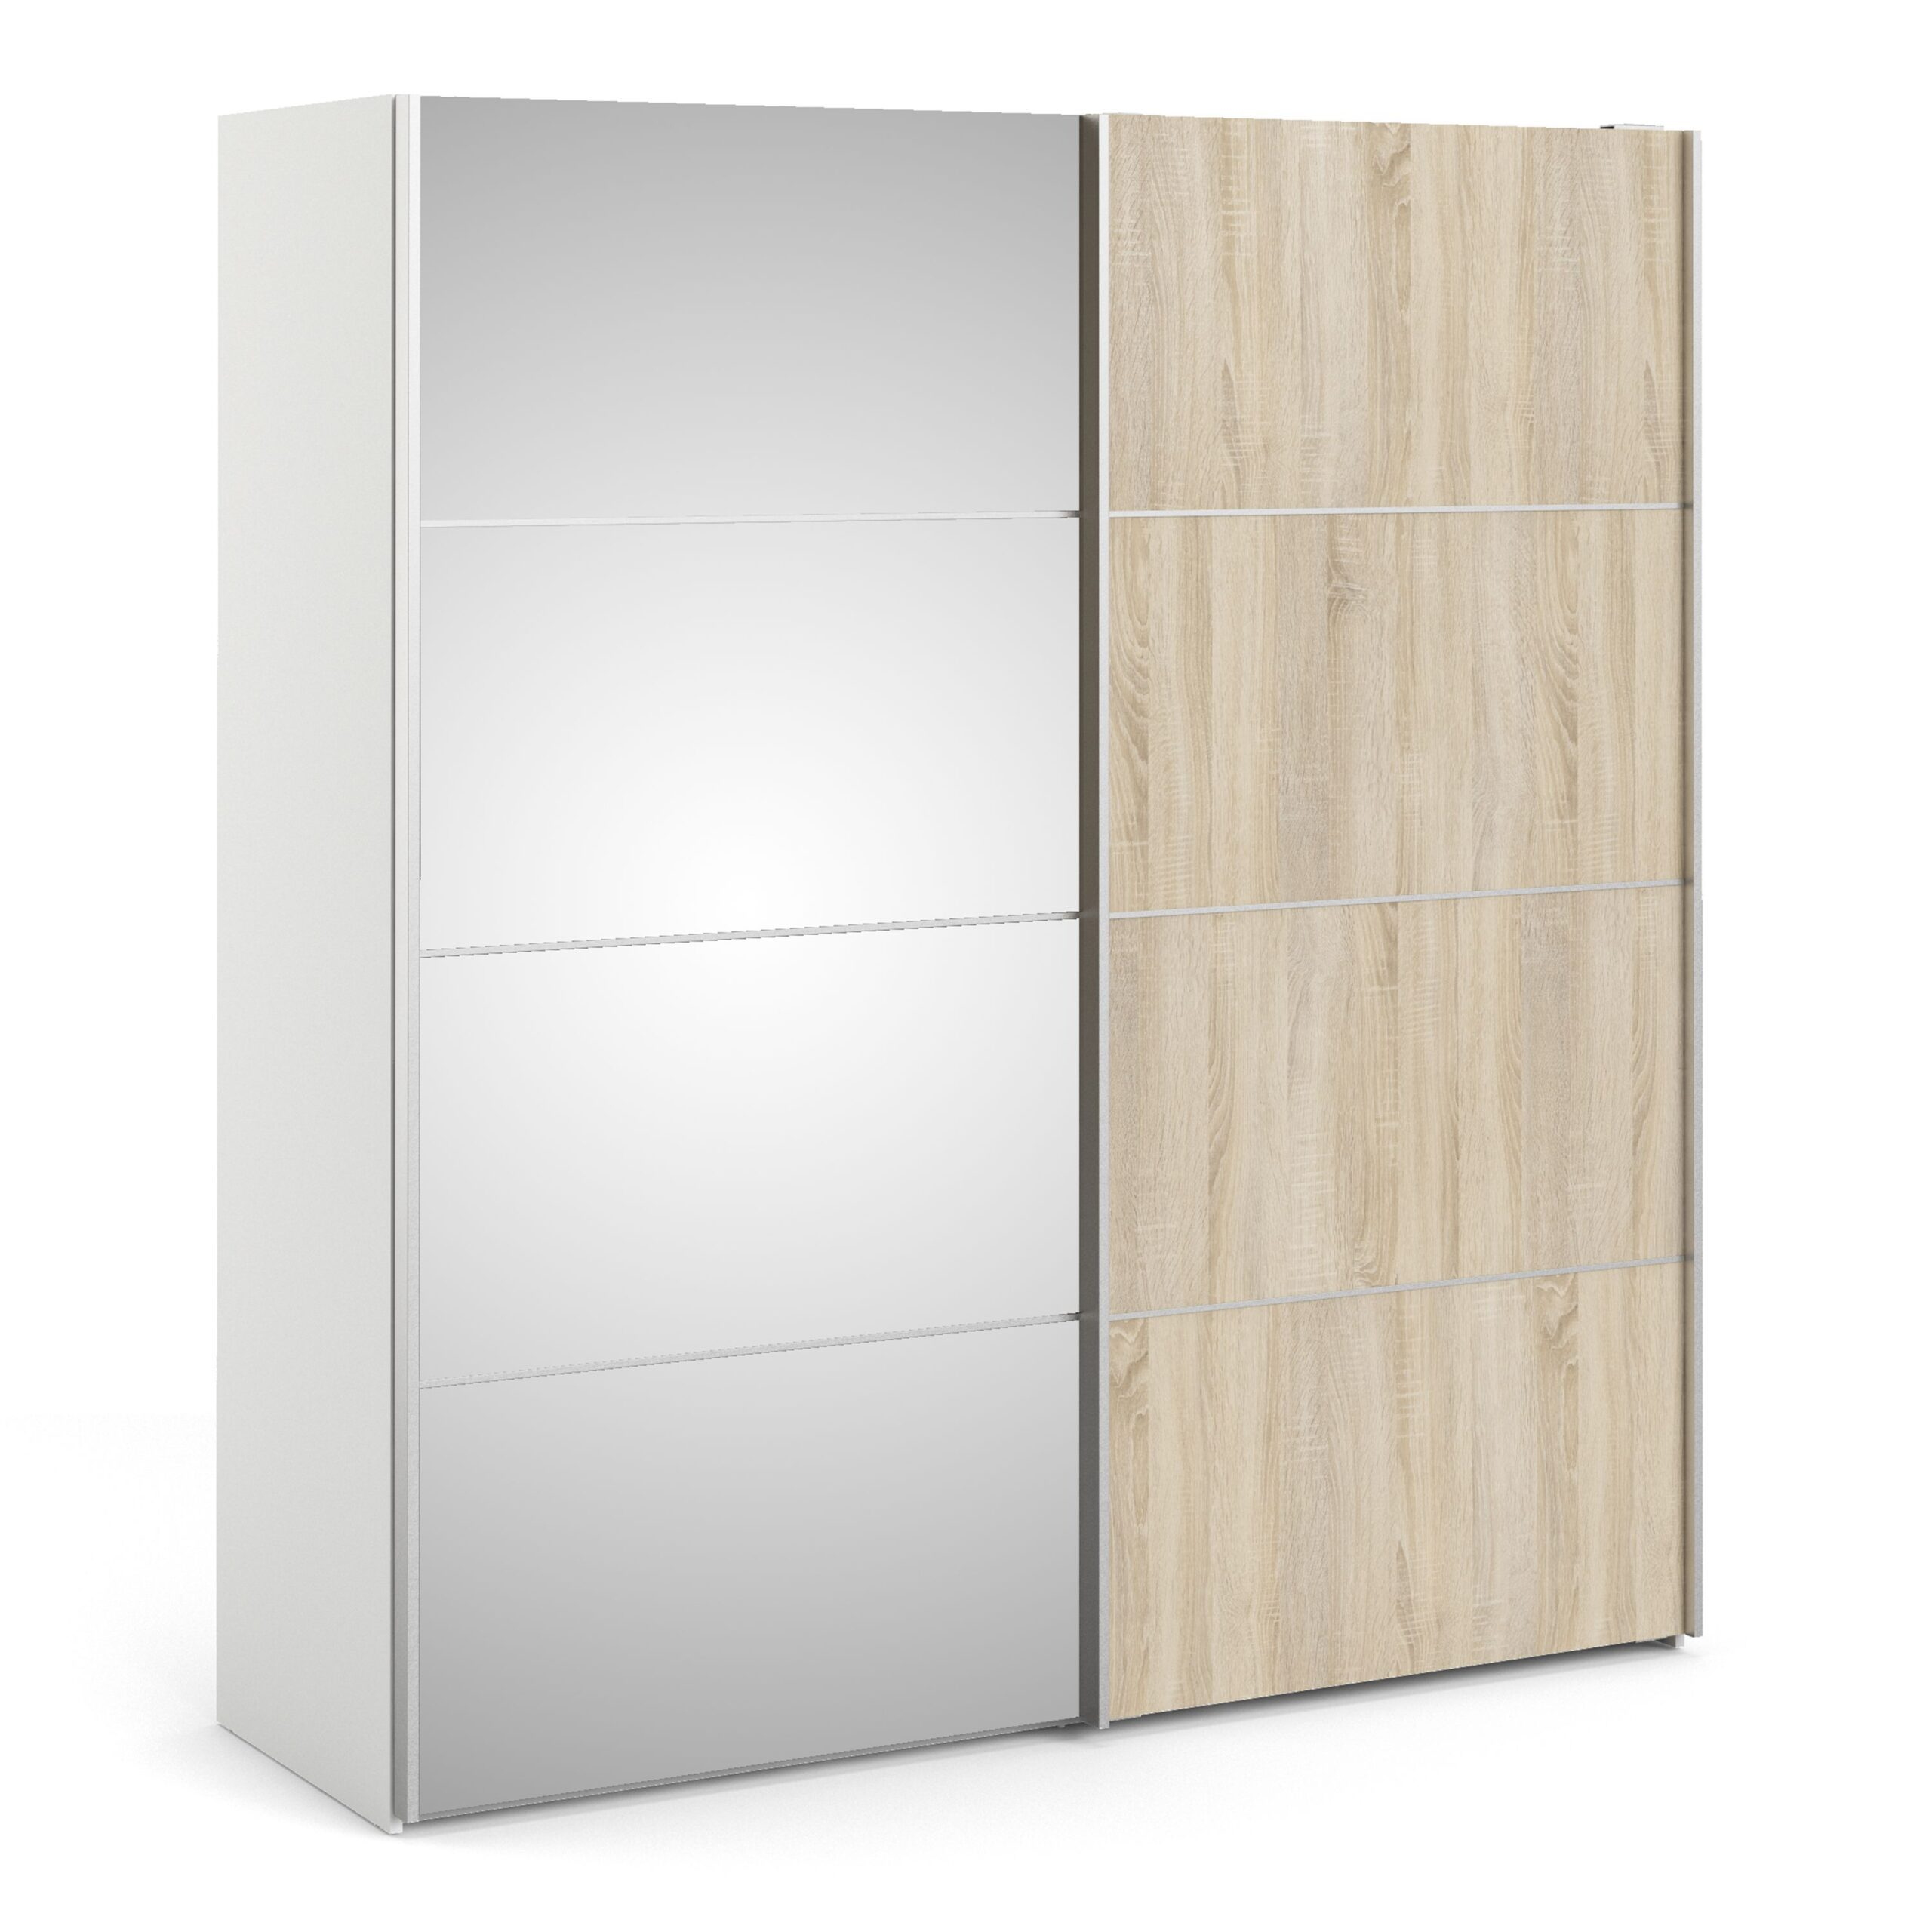 Phillipe Sliding Wardrobe 180cm In White With Oak And Mirror Doors With Five Shelves